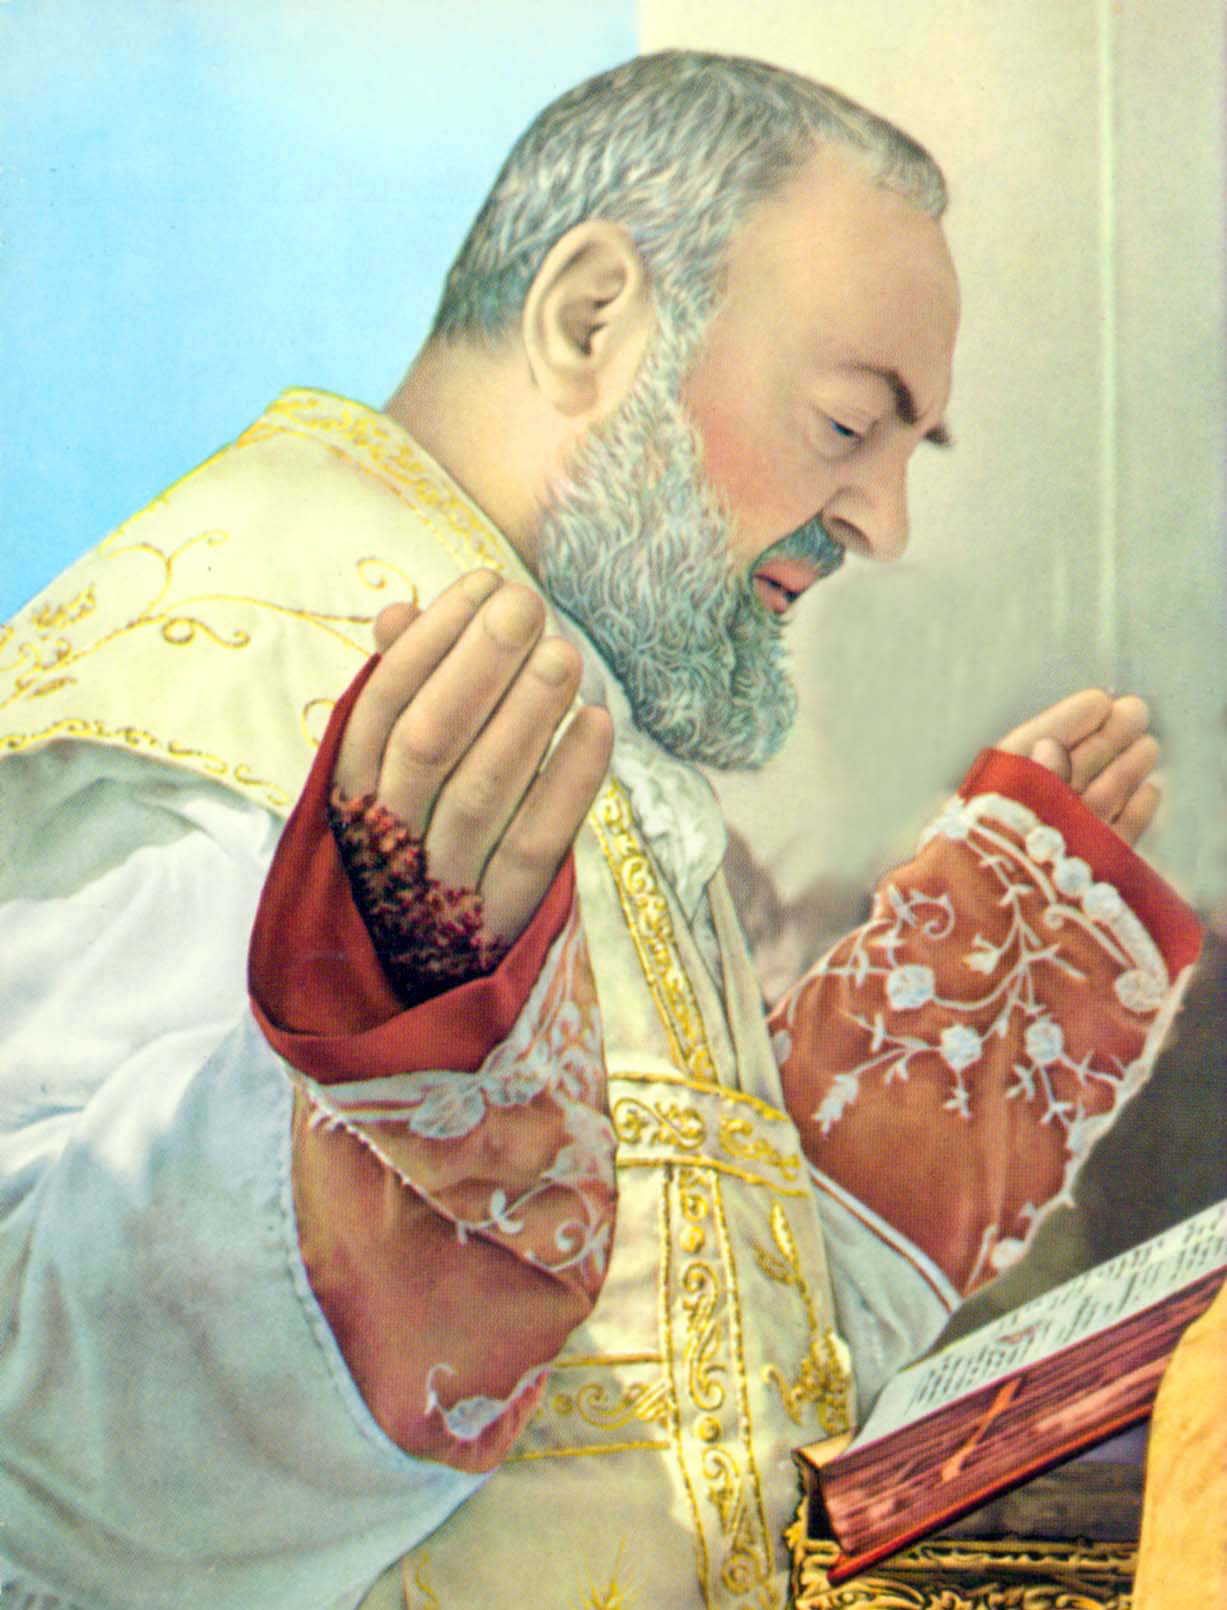 "<a href=""https://www.palmarianchurch.org/saint-pio-of-pietrelcina/"" title=""Saint Pío of Pietrelcina"">Saint Pío of Pietrelcina<br><br>See more</a>"